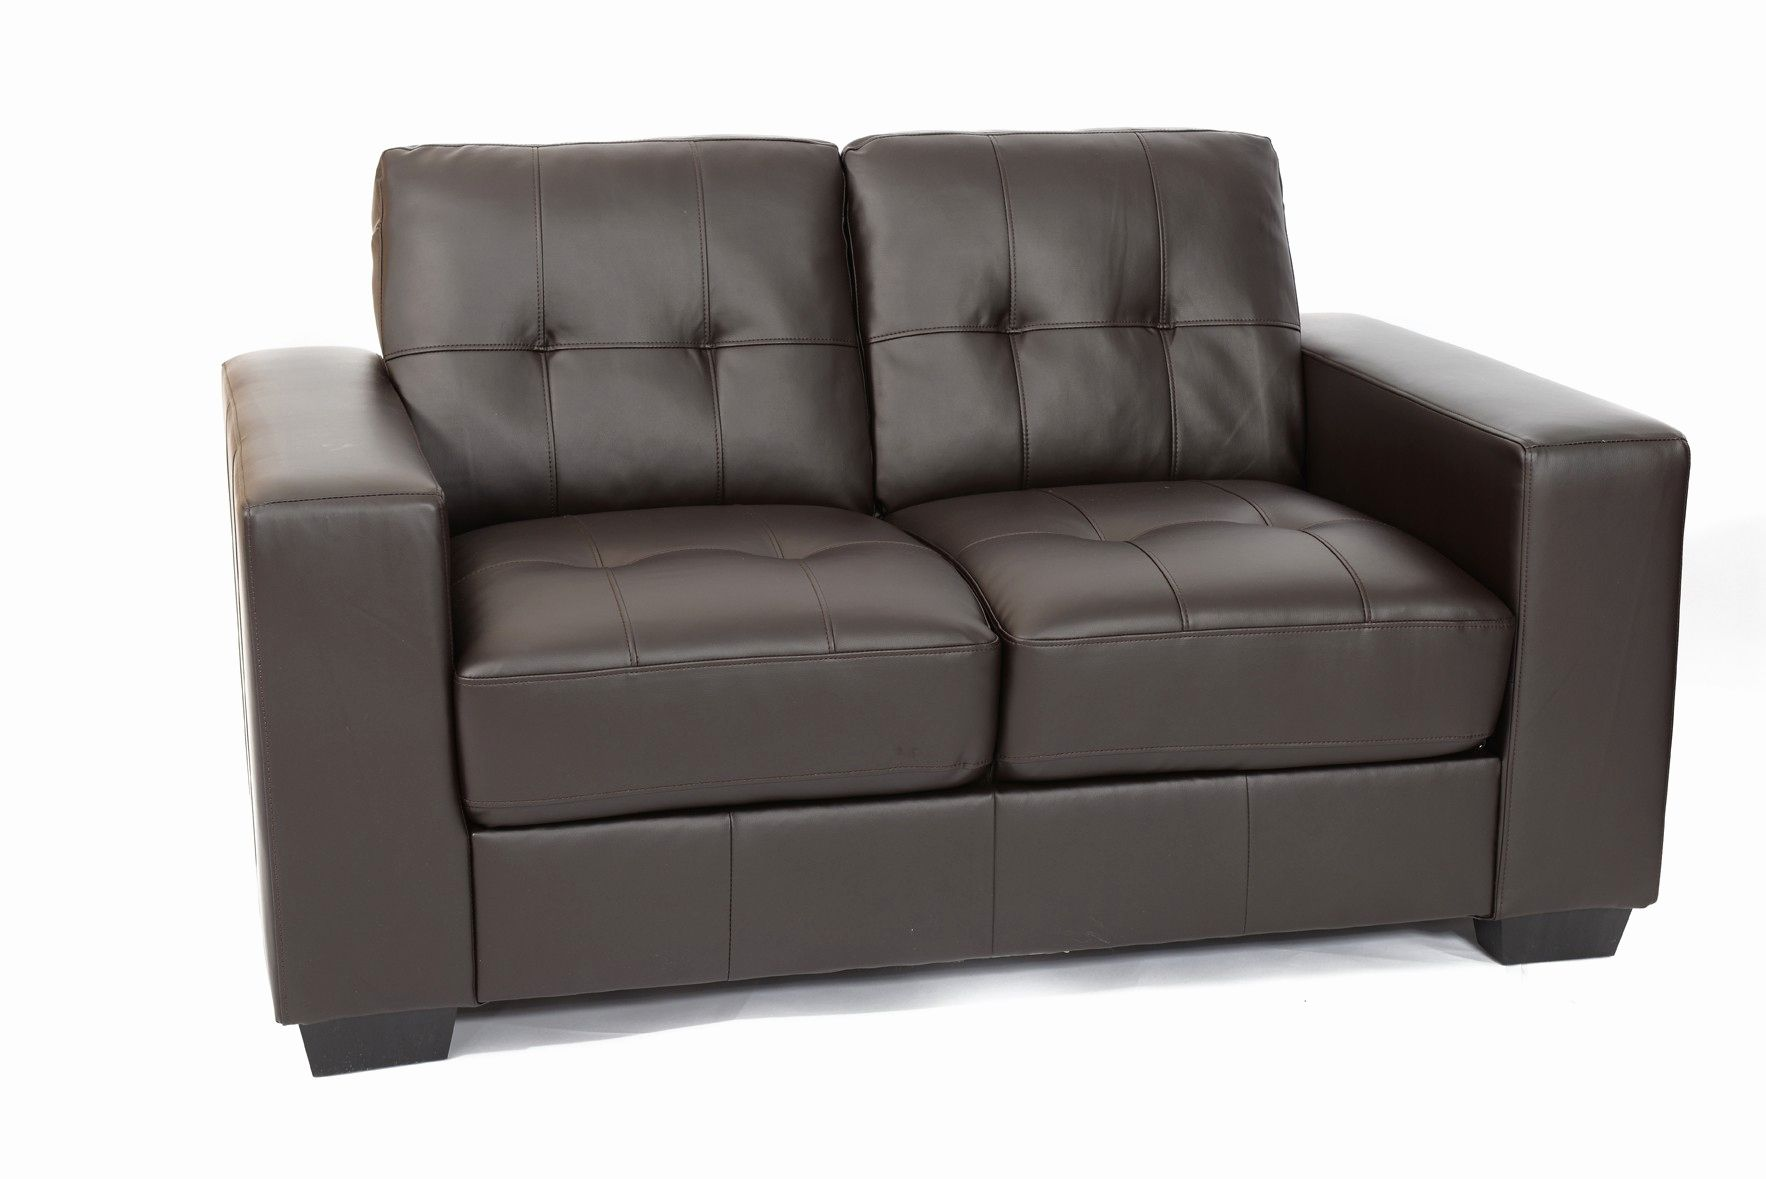 Merveilleux Luxury Naples Leather Sofa Photos Natuzzi Editions Naples Leather Sofa With  Track Arm Review Hereo